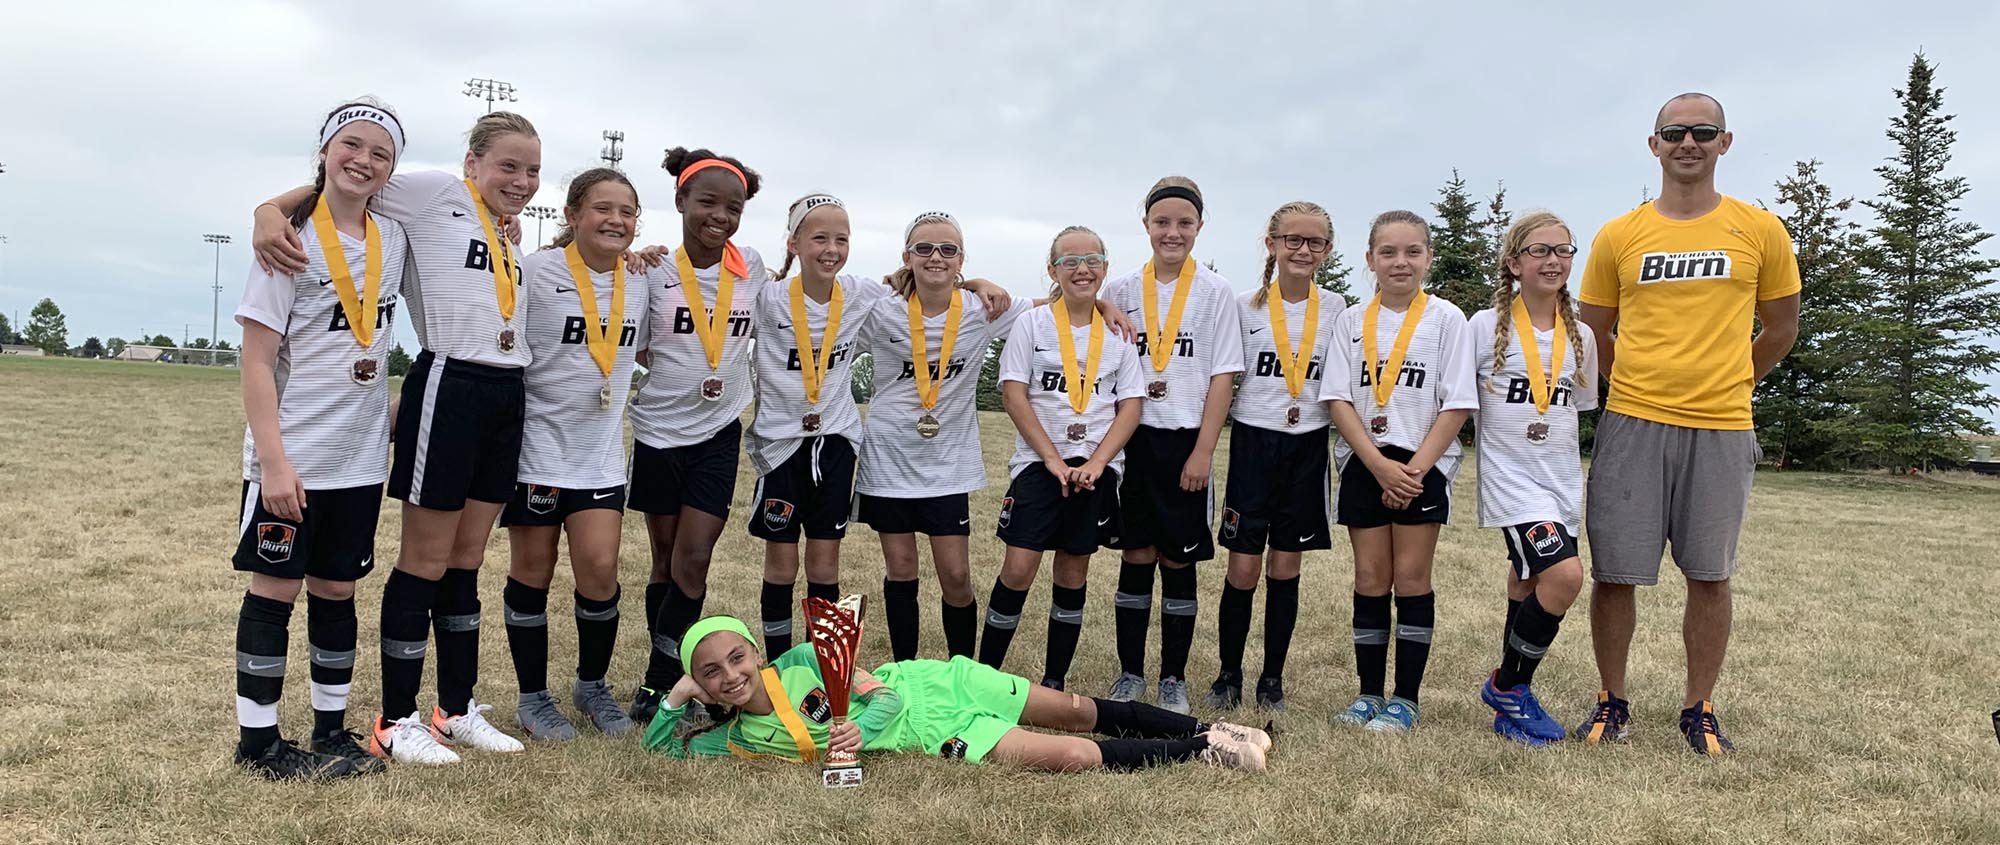 U11 Girls Black 09 DA are Rush Kickoff Champions!